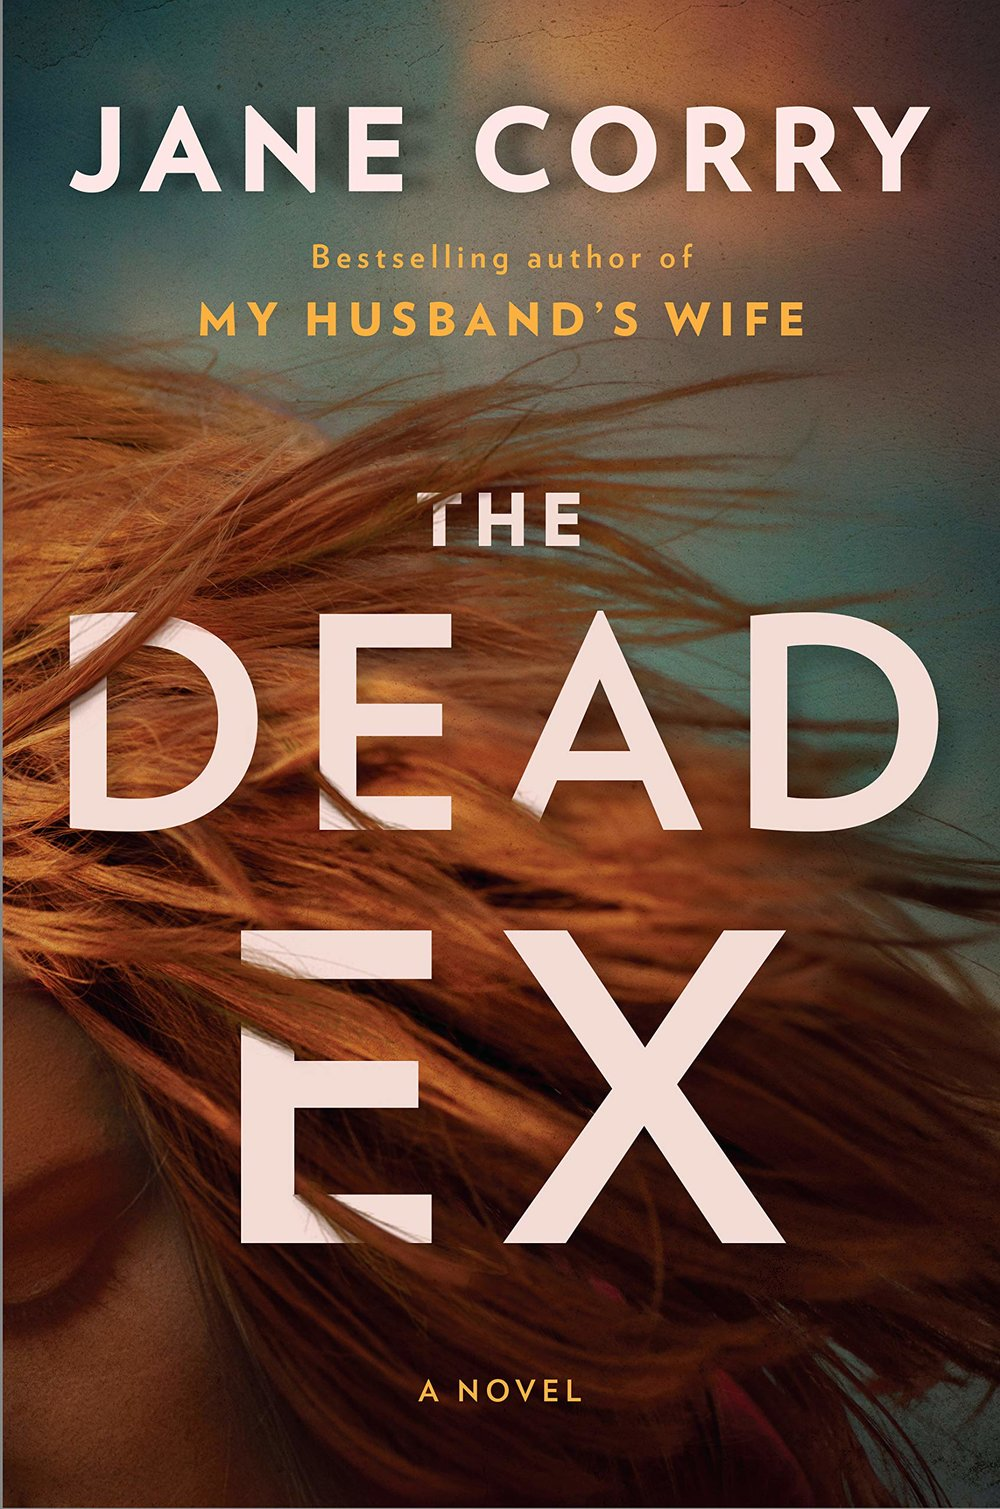 "THE DEAD EX by Jane Corry   Vicki's ex-husband has just gone missing. She insists she last saw him years ago when they divorced, but the police don't believe her and her memory's hardly reliable--what if she did have something to do with it? Meanwhile, Scarlet and her mother Zelda are down on their luck, and at eight years old, Scarlet doesn't know that the ""game"" her mother forces her to play is really just to deal drugs. Soon, Zelda is caught, and Scarlet is forced into years of foster care--an experience that will shape the rest of her life. Elsewhere, David's new wife, Tanya, is the one who reported him missing, but what really happened on the night of David's disappearance? The answers lie in the connection between these four women--and the one person they can't escape."